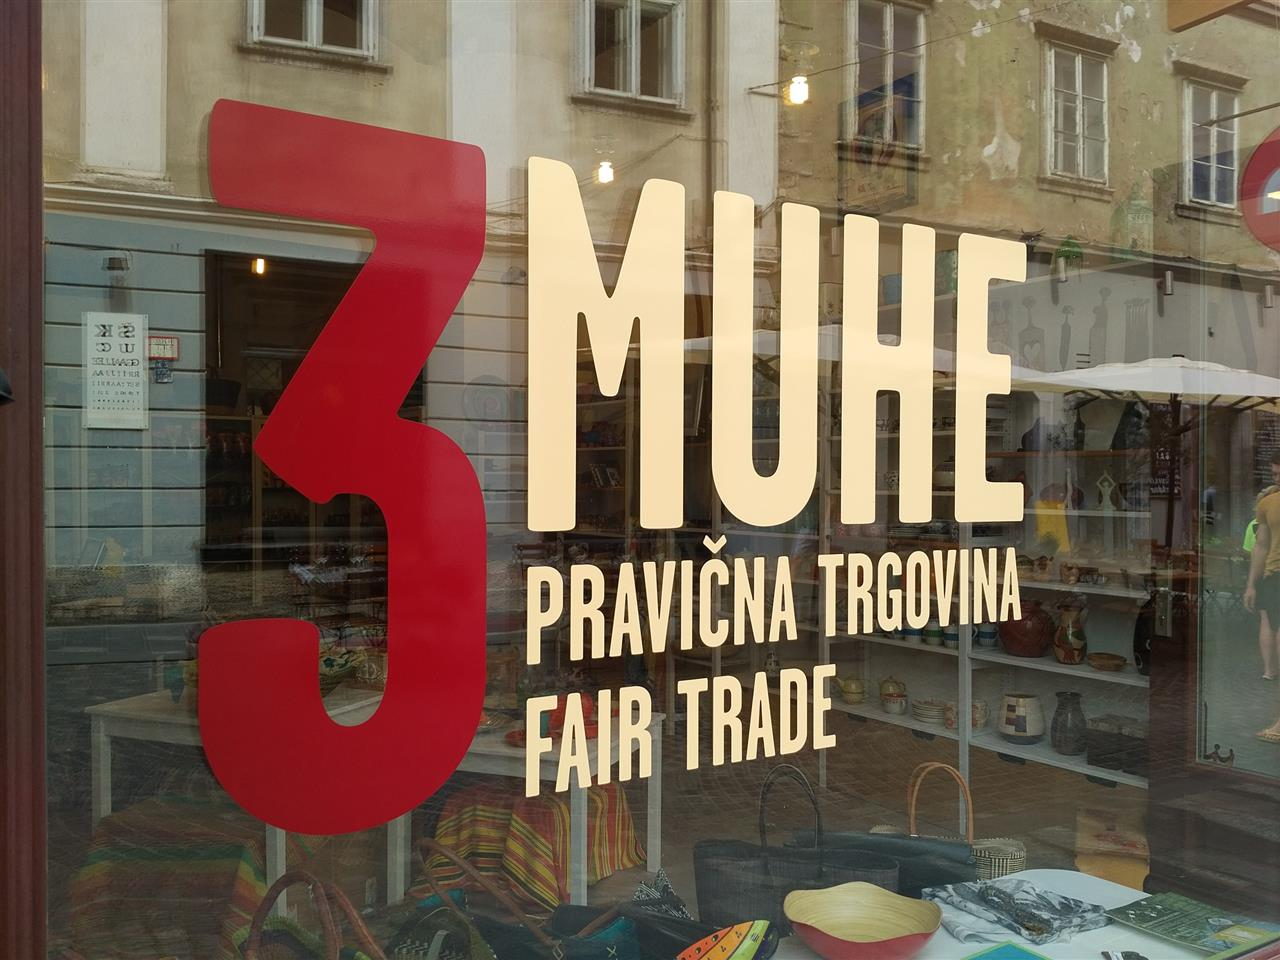 3MUEH fair trade store in Ljubljana